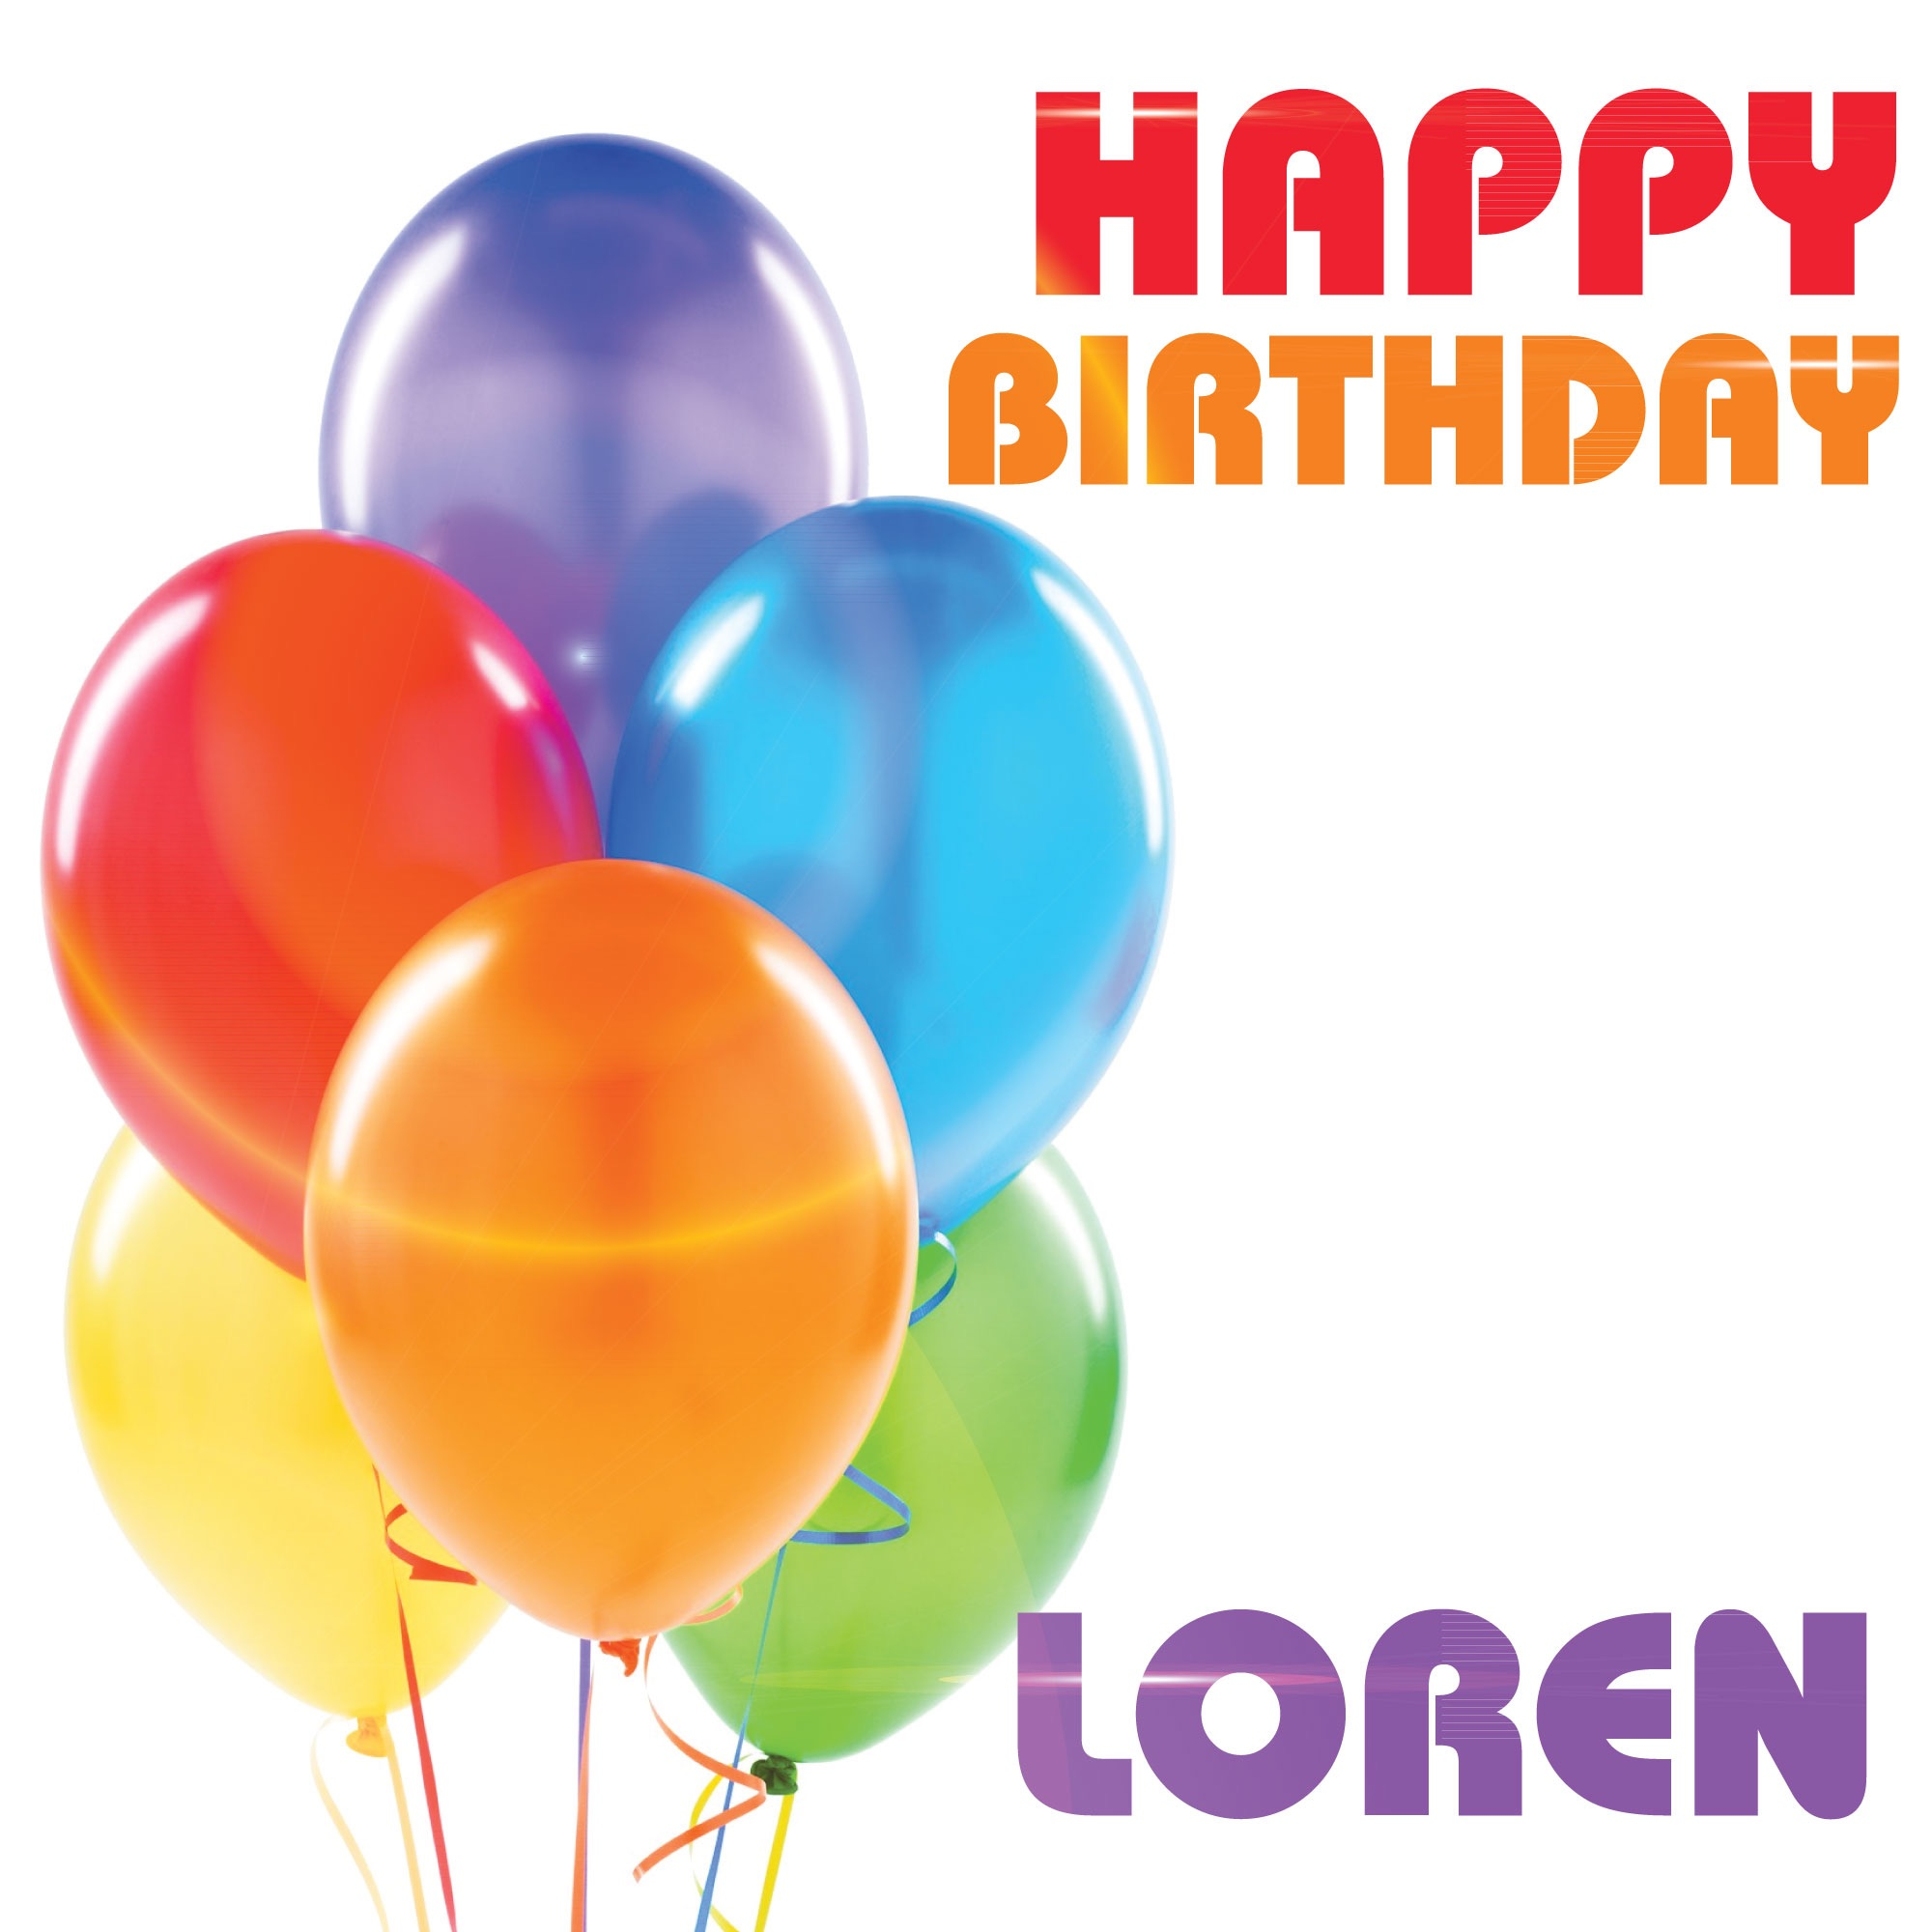 Happy Birthday Loren (Single) by The Birthday Crew on iTunes